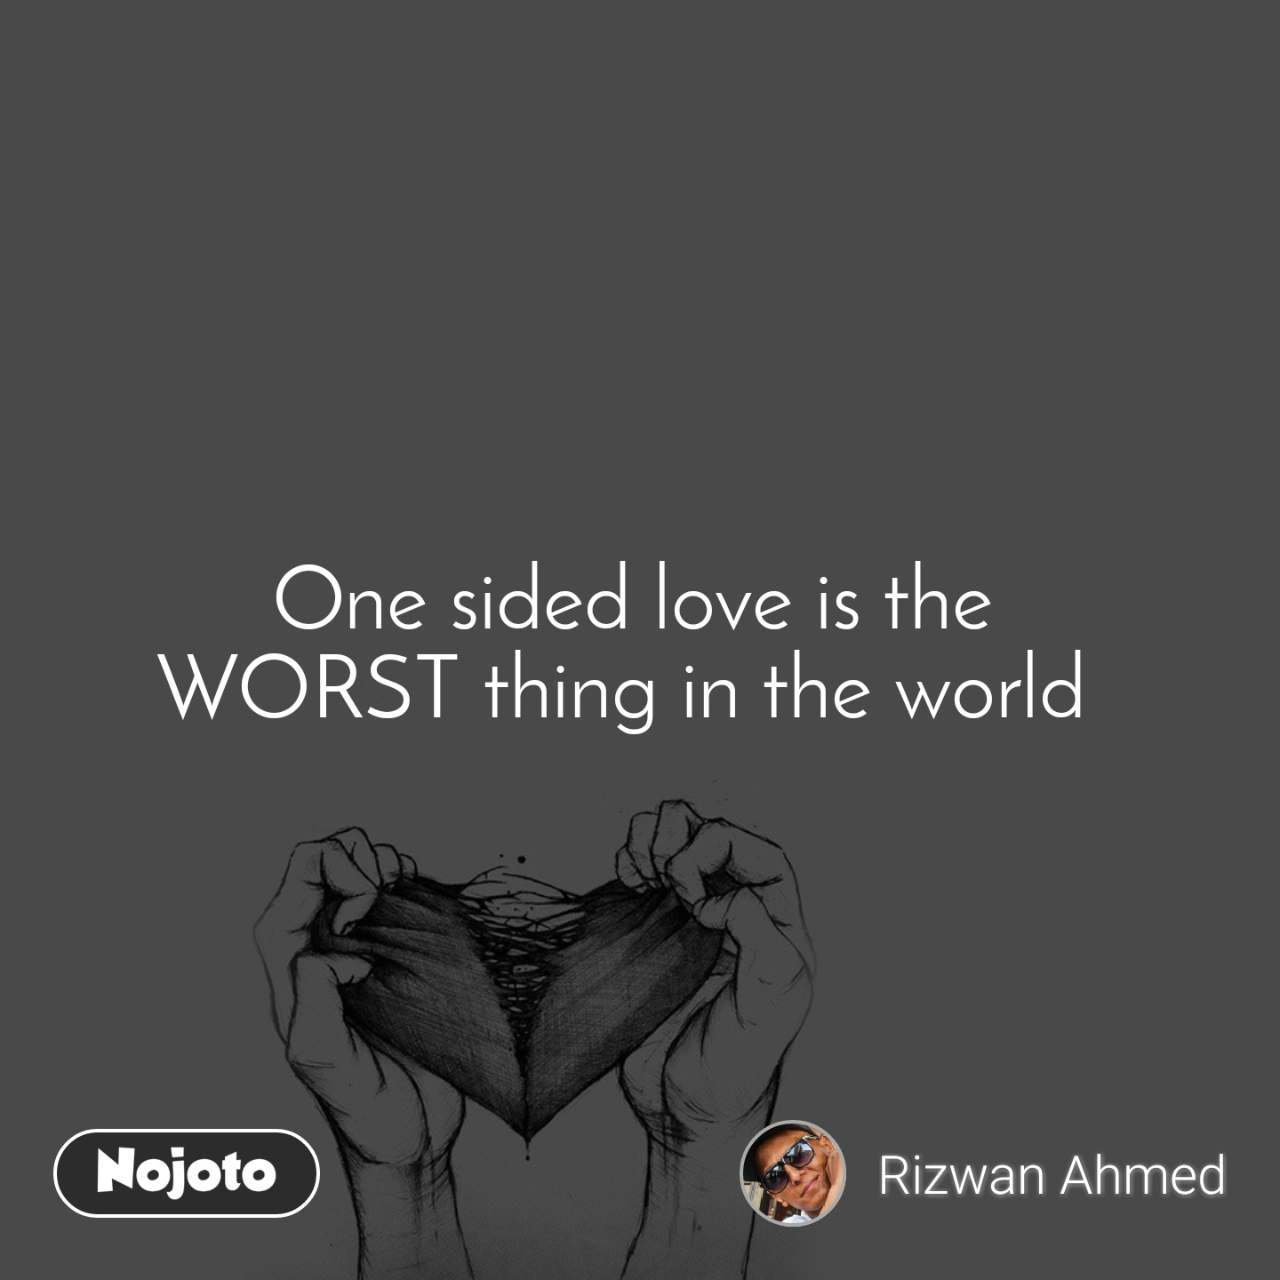 One sided love is the WORST thing in the world